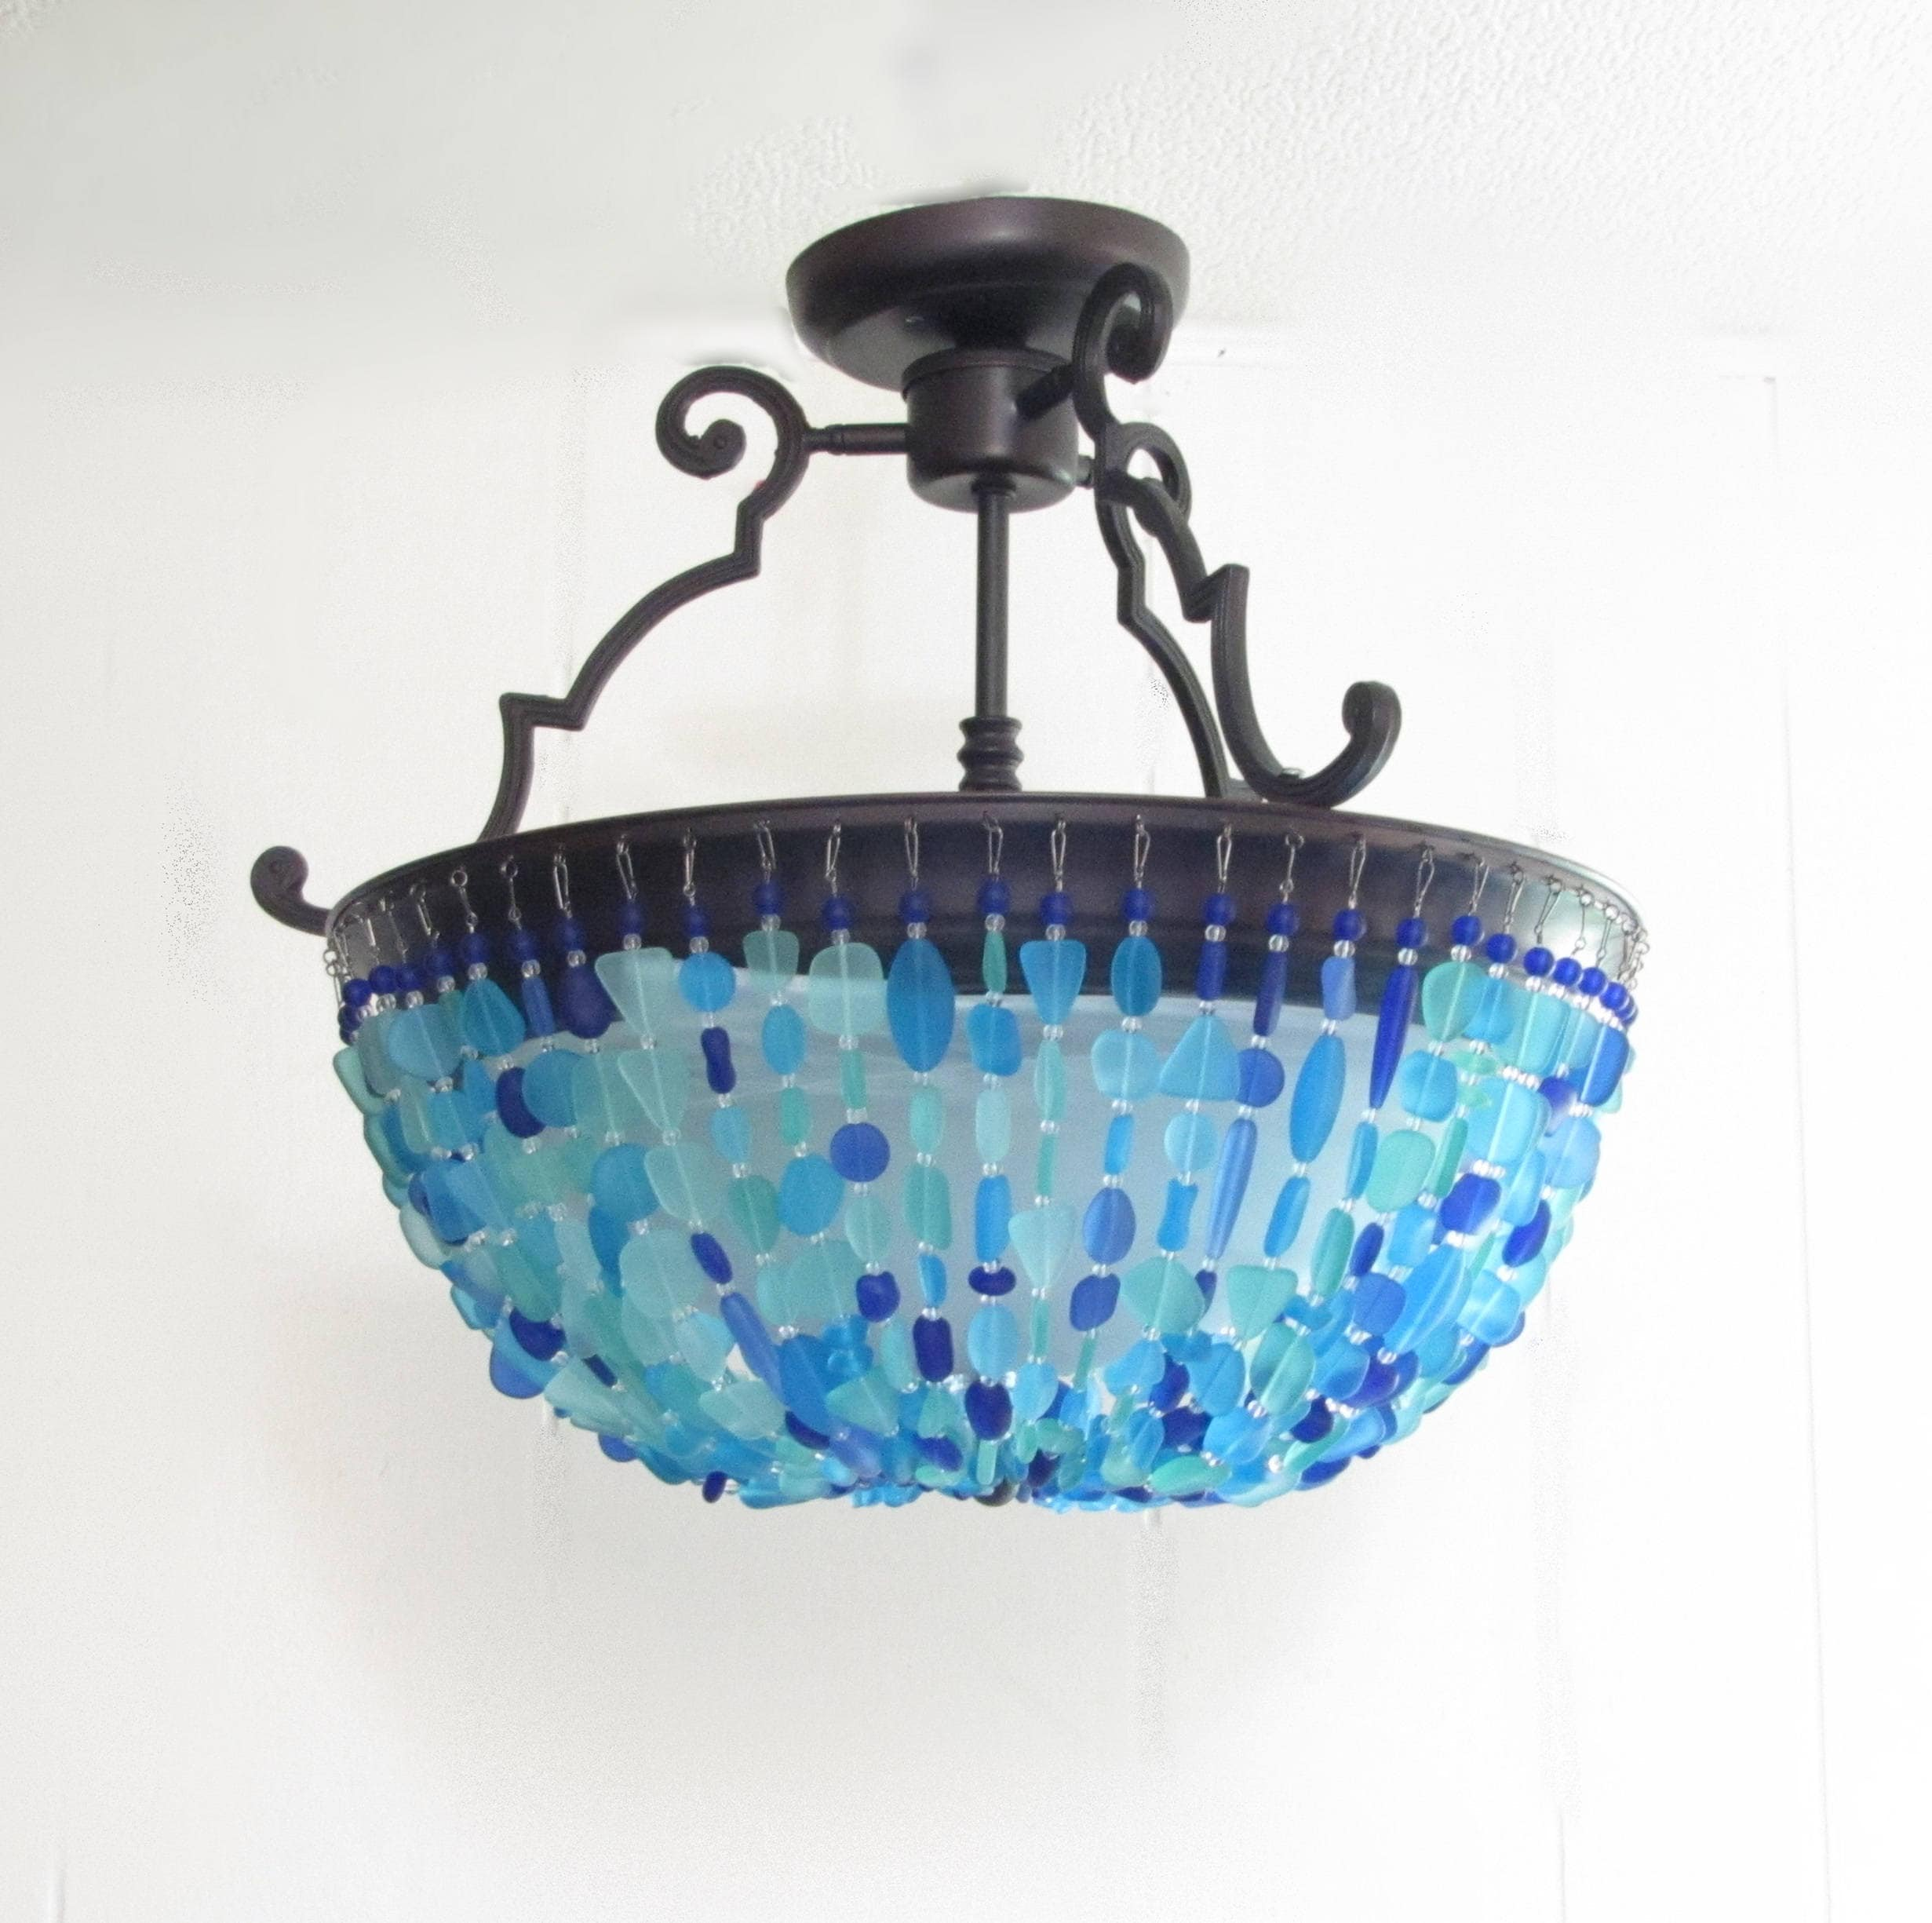 Beach Lighting Products: Sea Glass Chandelier Lighting Fixture Beach Glass Ceiling